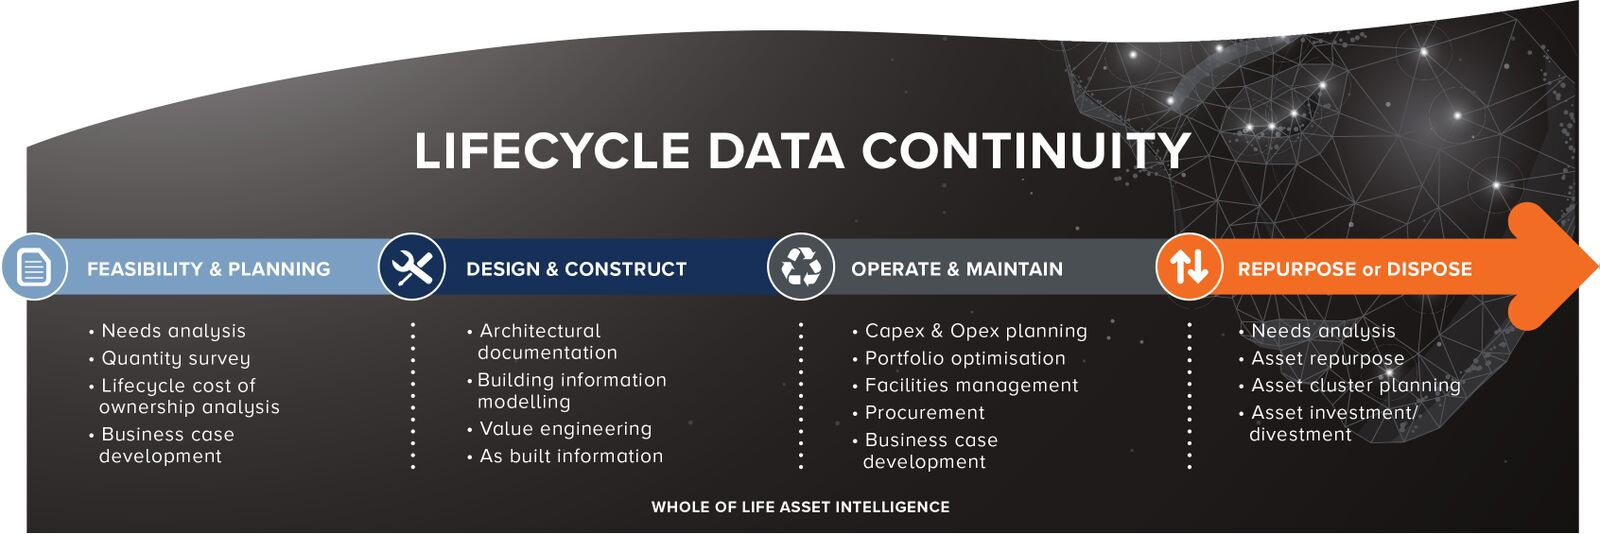 Lifecycle Data Continuity